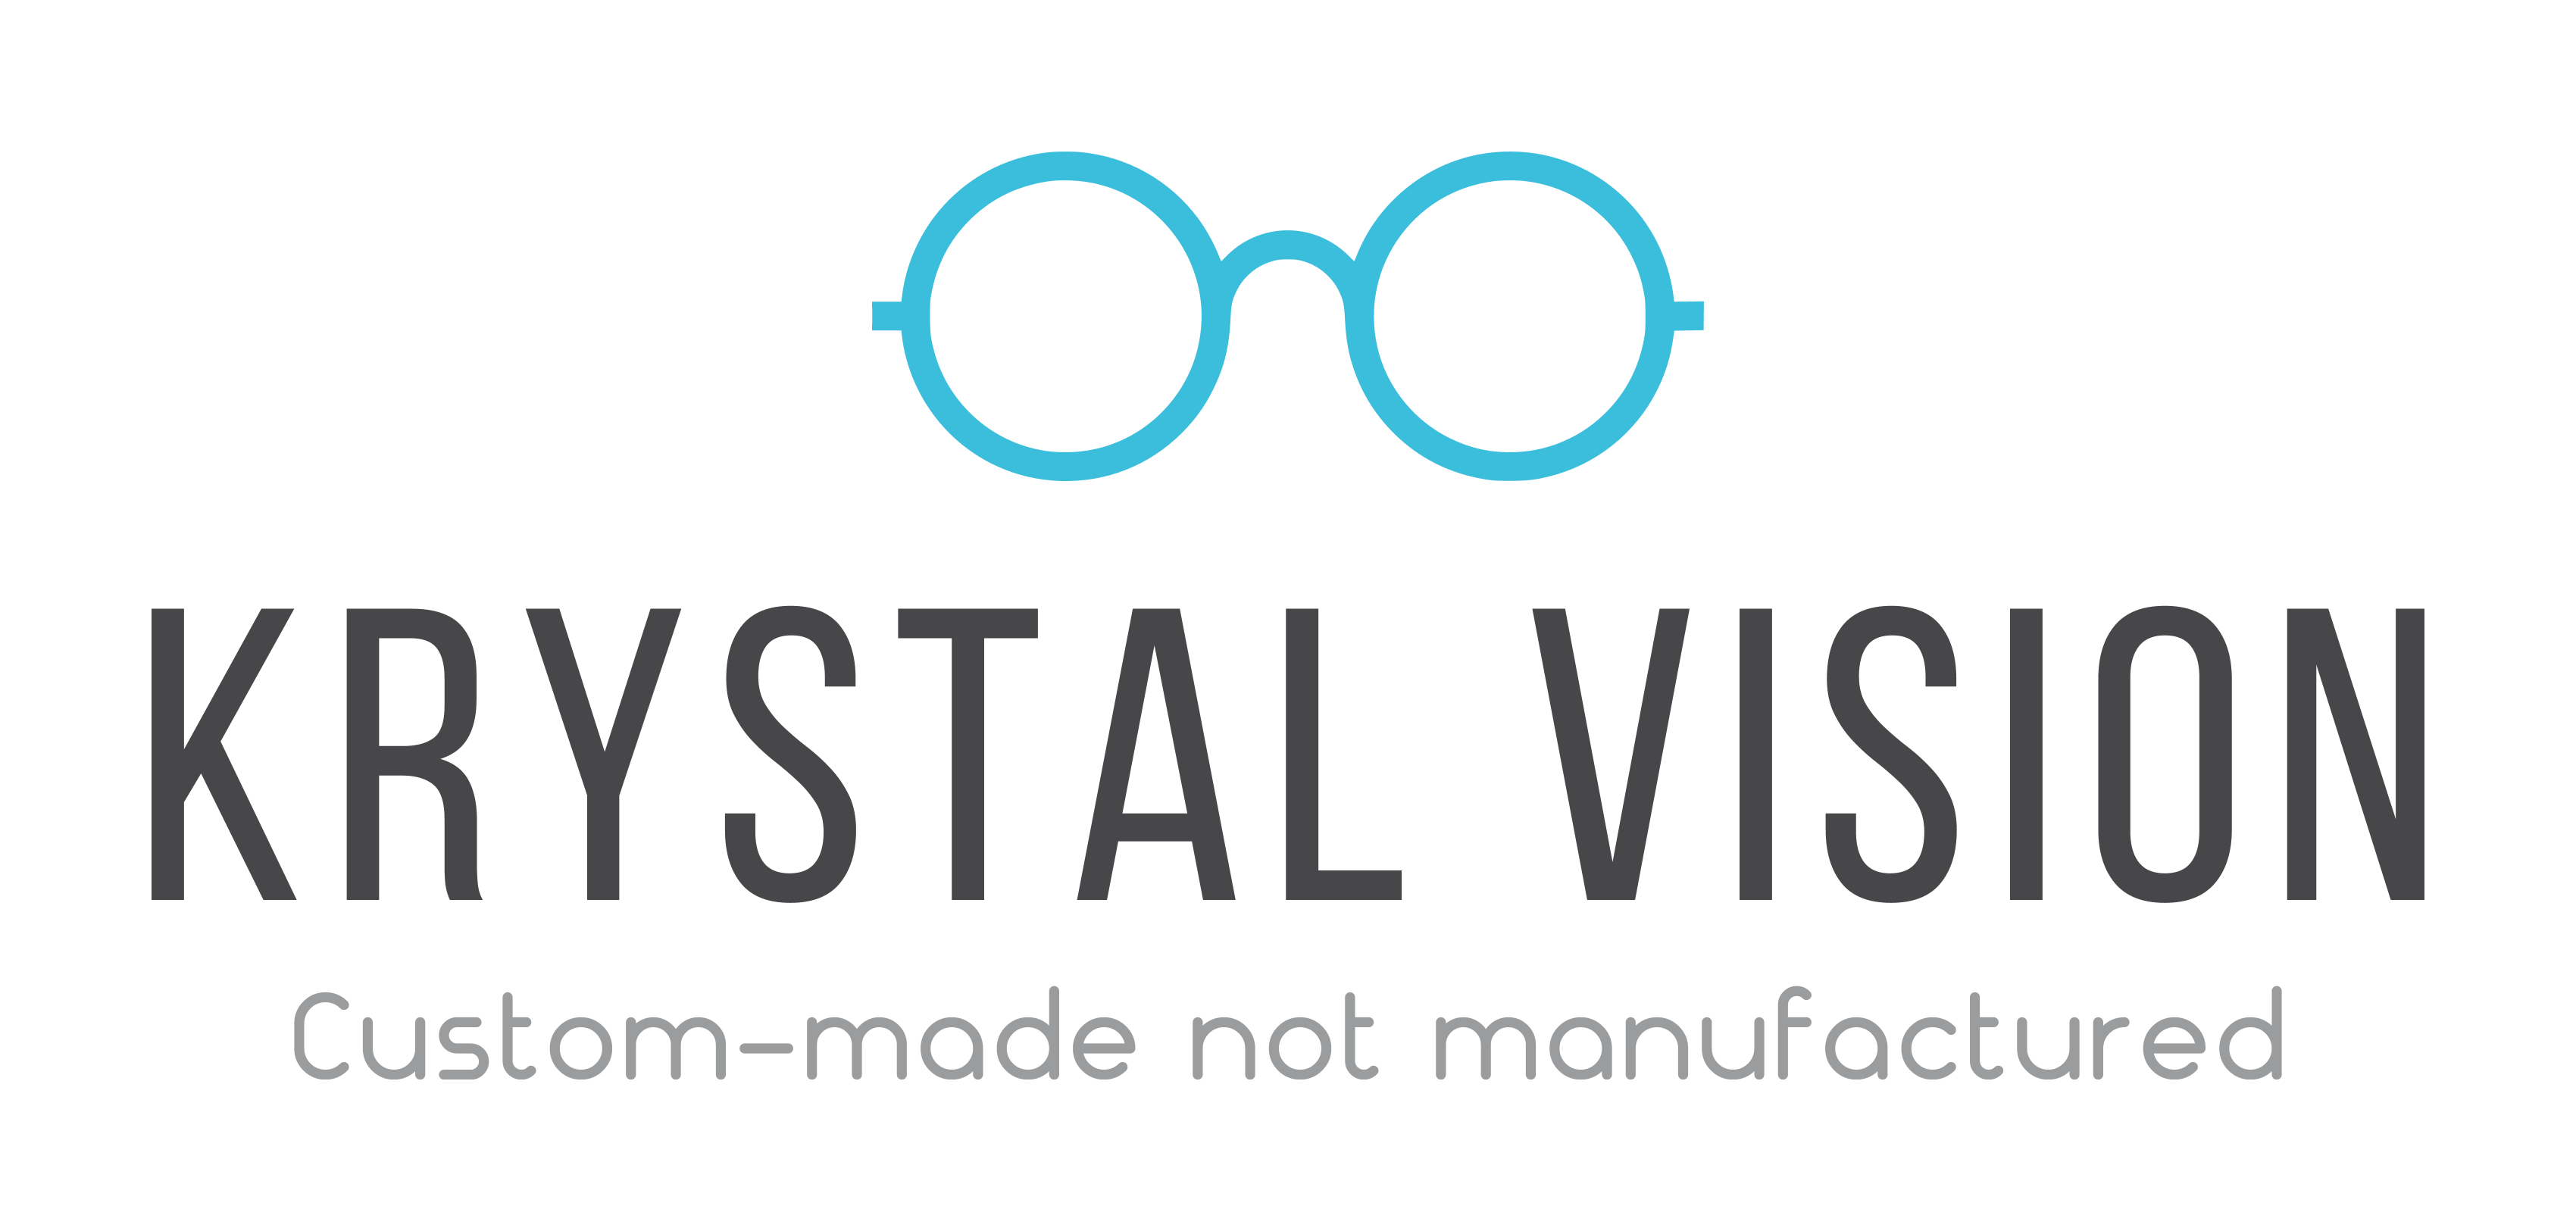 image relating to Printable Millimeter Ruler for Eyeglasses called How Towards Evaluate Your PD Krystal Eyesight